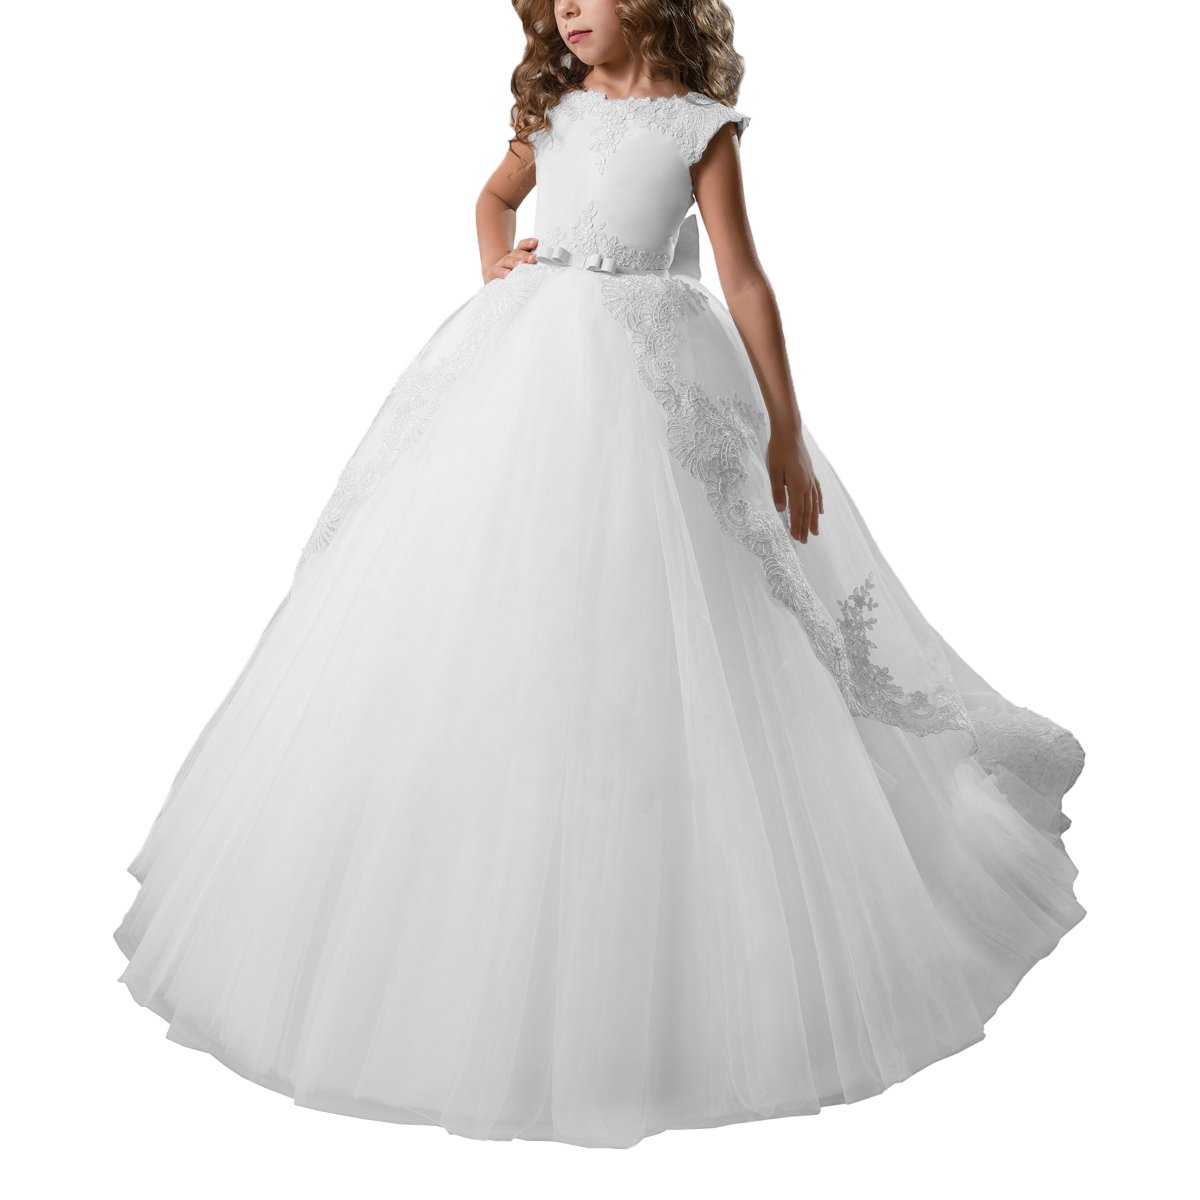 AbaoSisters Flower Girl Dress Fancy Tulle Satin Lace Cap Sleeves Pageant Girls Ball Gown White Ivory JJL007